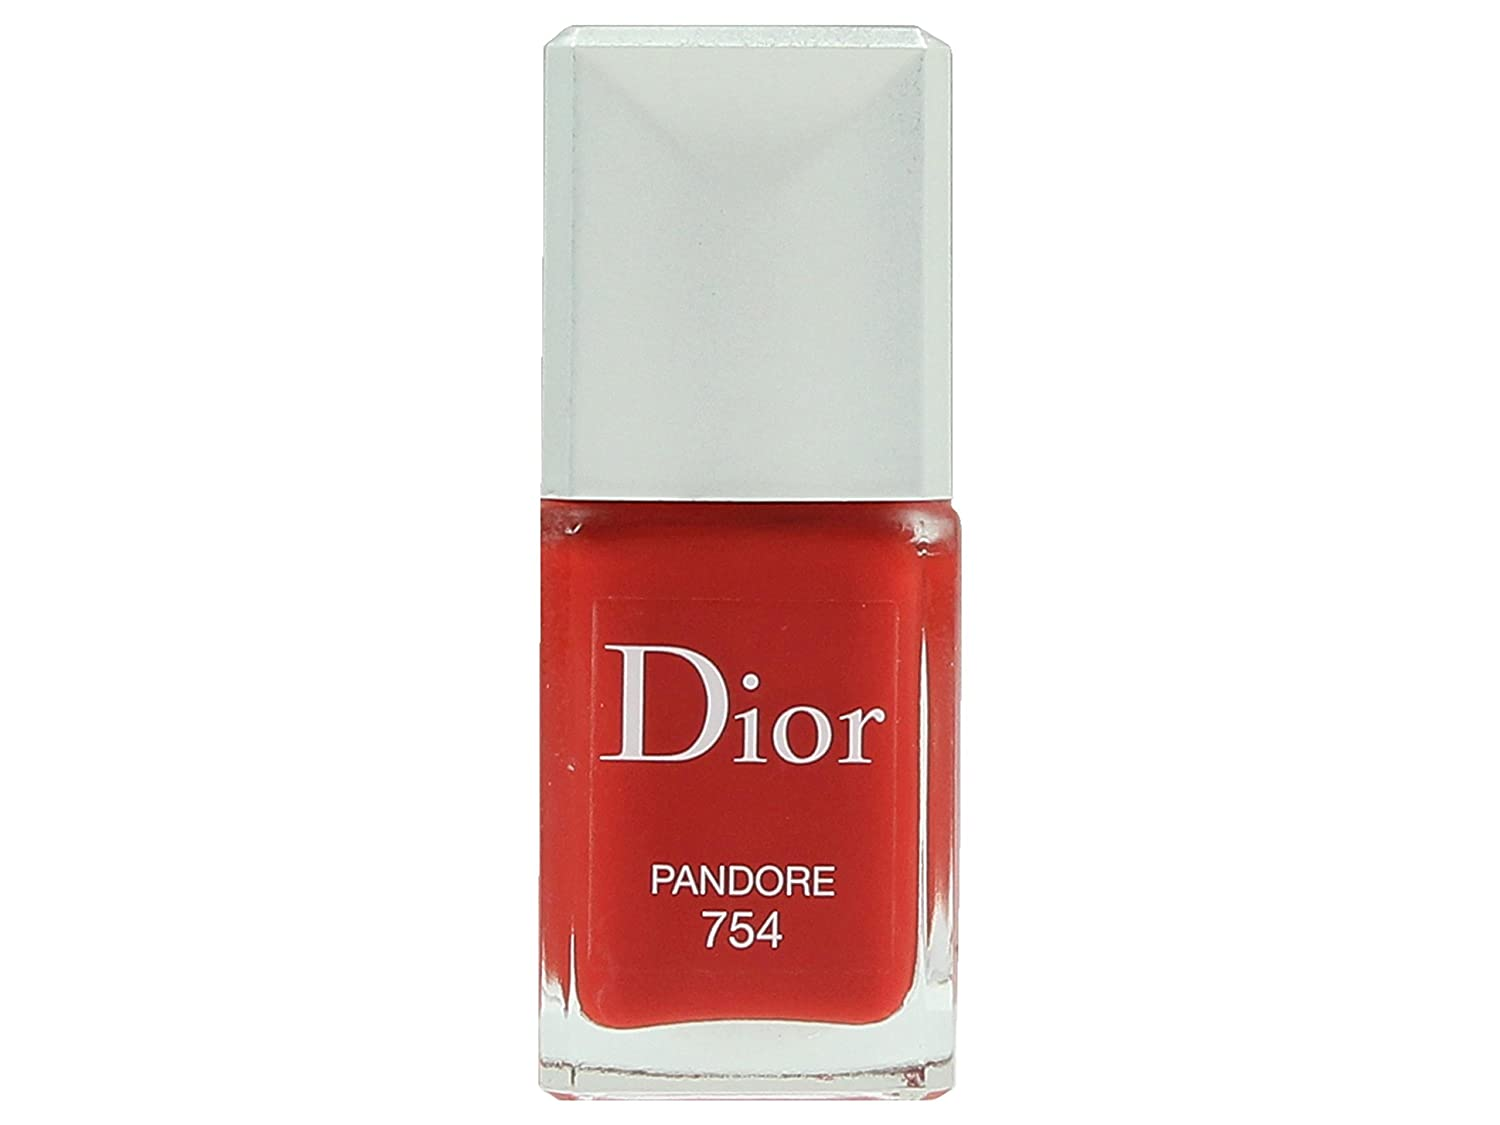 Christian Dior Vernis Nail Lacquer for Women, 754/Pandore, 0.33 Ounce